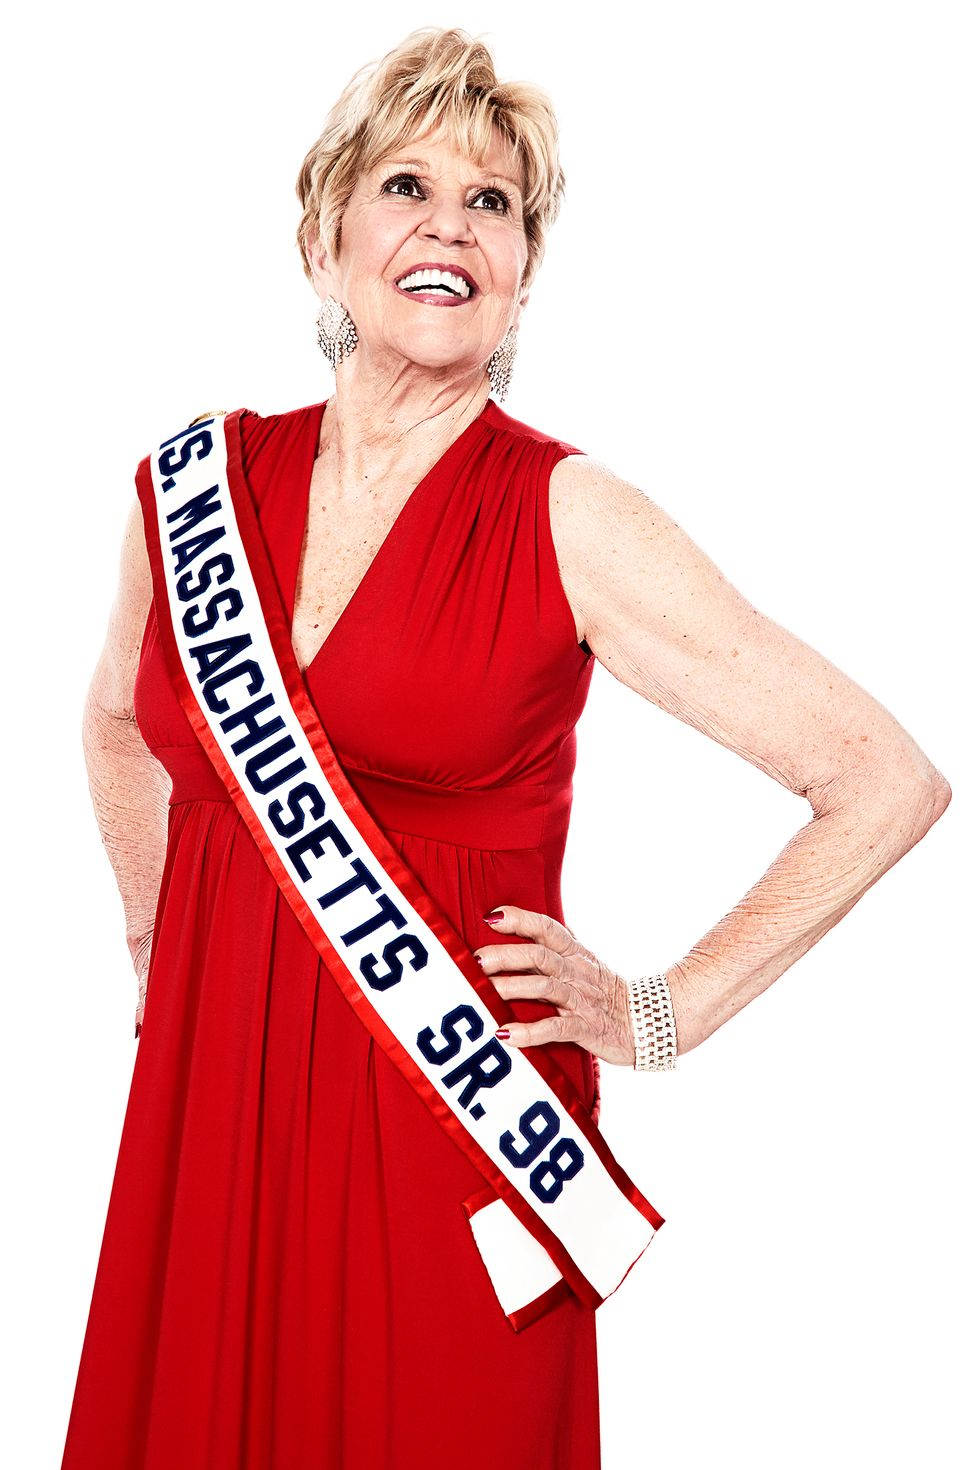 Check Out These Inspiring Portraits From the Ms. Senior America Pageant